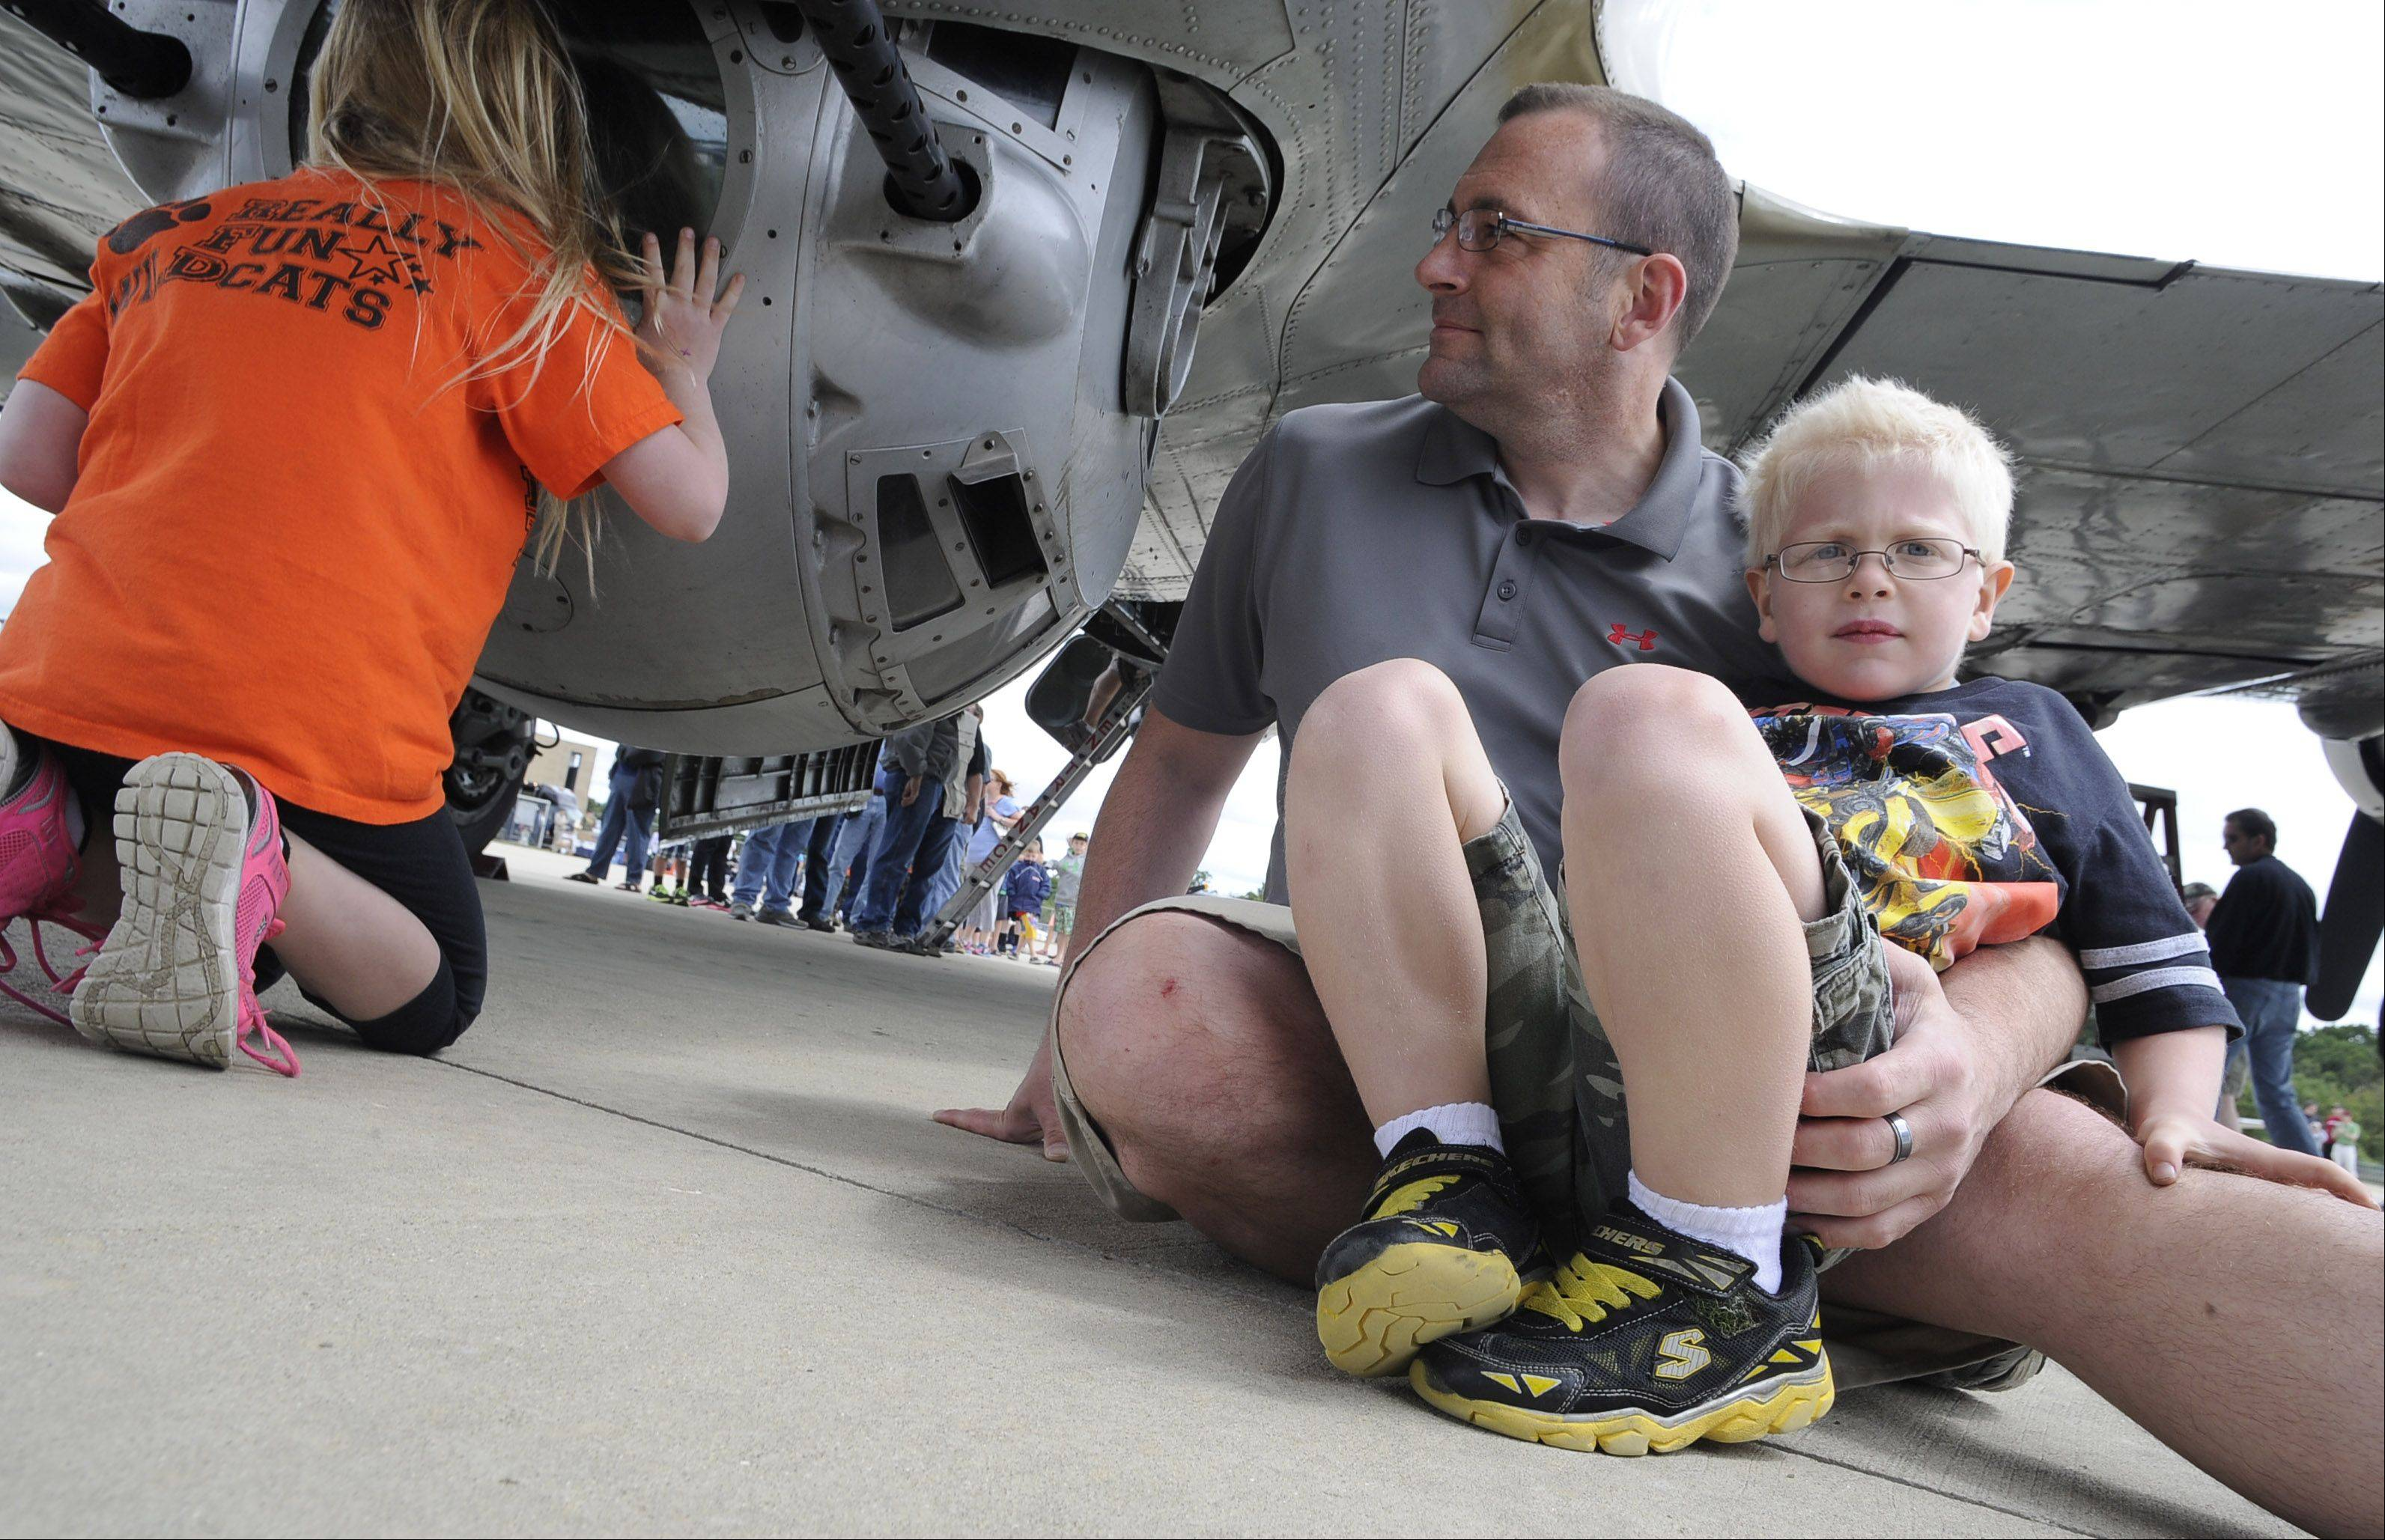 Mina Walldorf, 7, of Libertyville along with her dad Karl and brother Erich, 5 , check out the B-17 Flying Fortress which landed at Chicago Executive Airport on Saturday as part of the 2013 Wings of Freedom Tour.